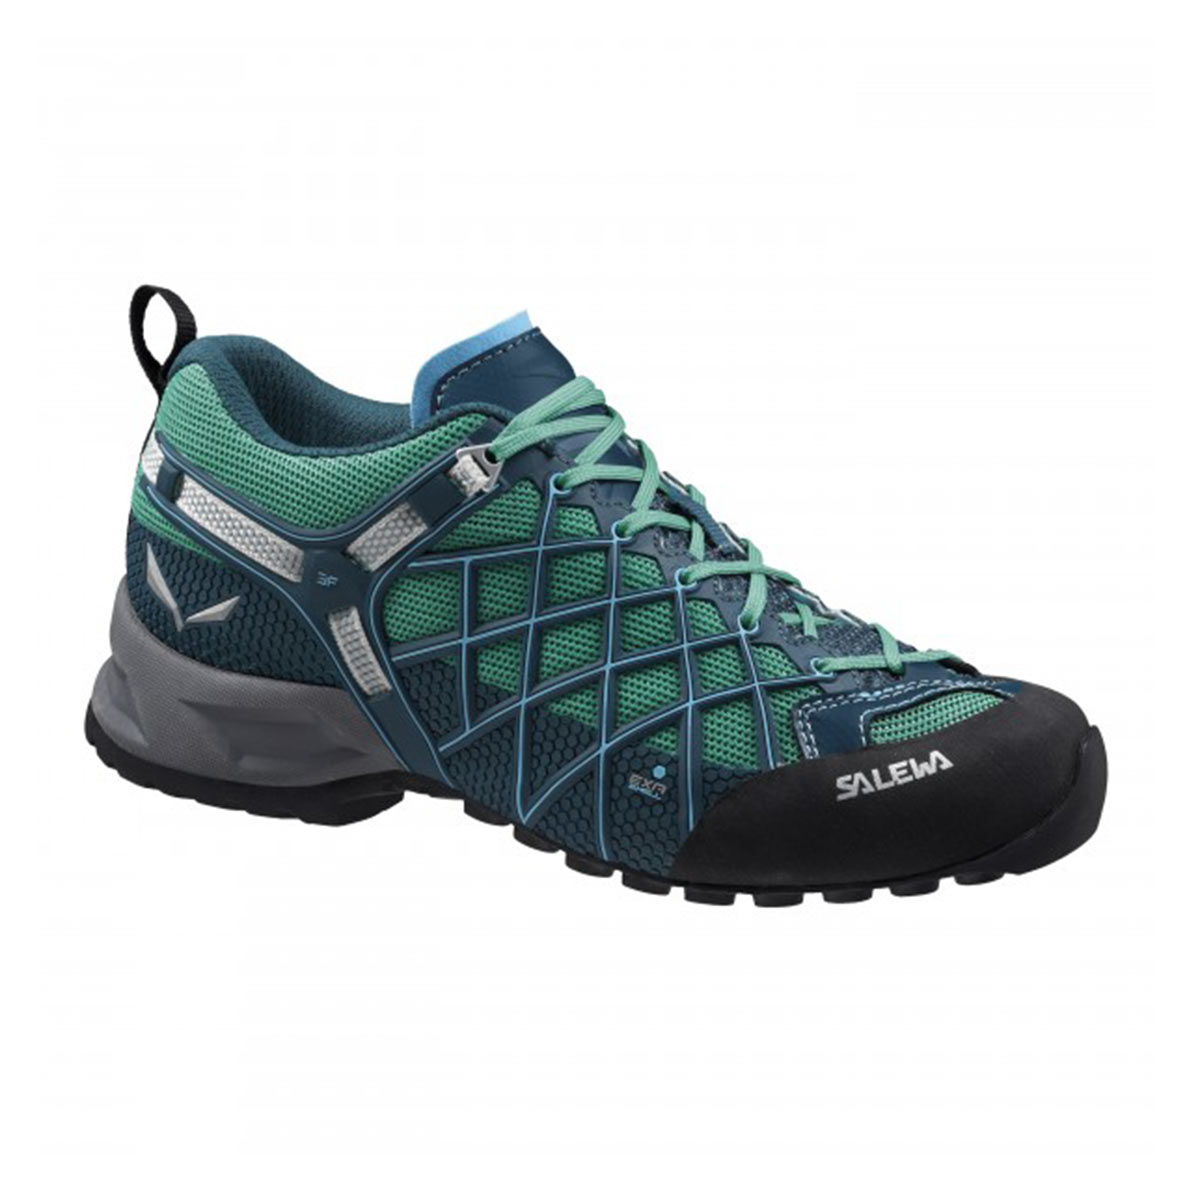 7efbae814842d Salewa Womens WIldfire GTX, approach shoe, mountaineering trainer